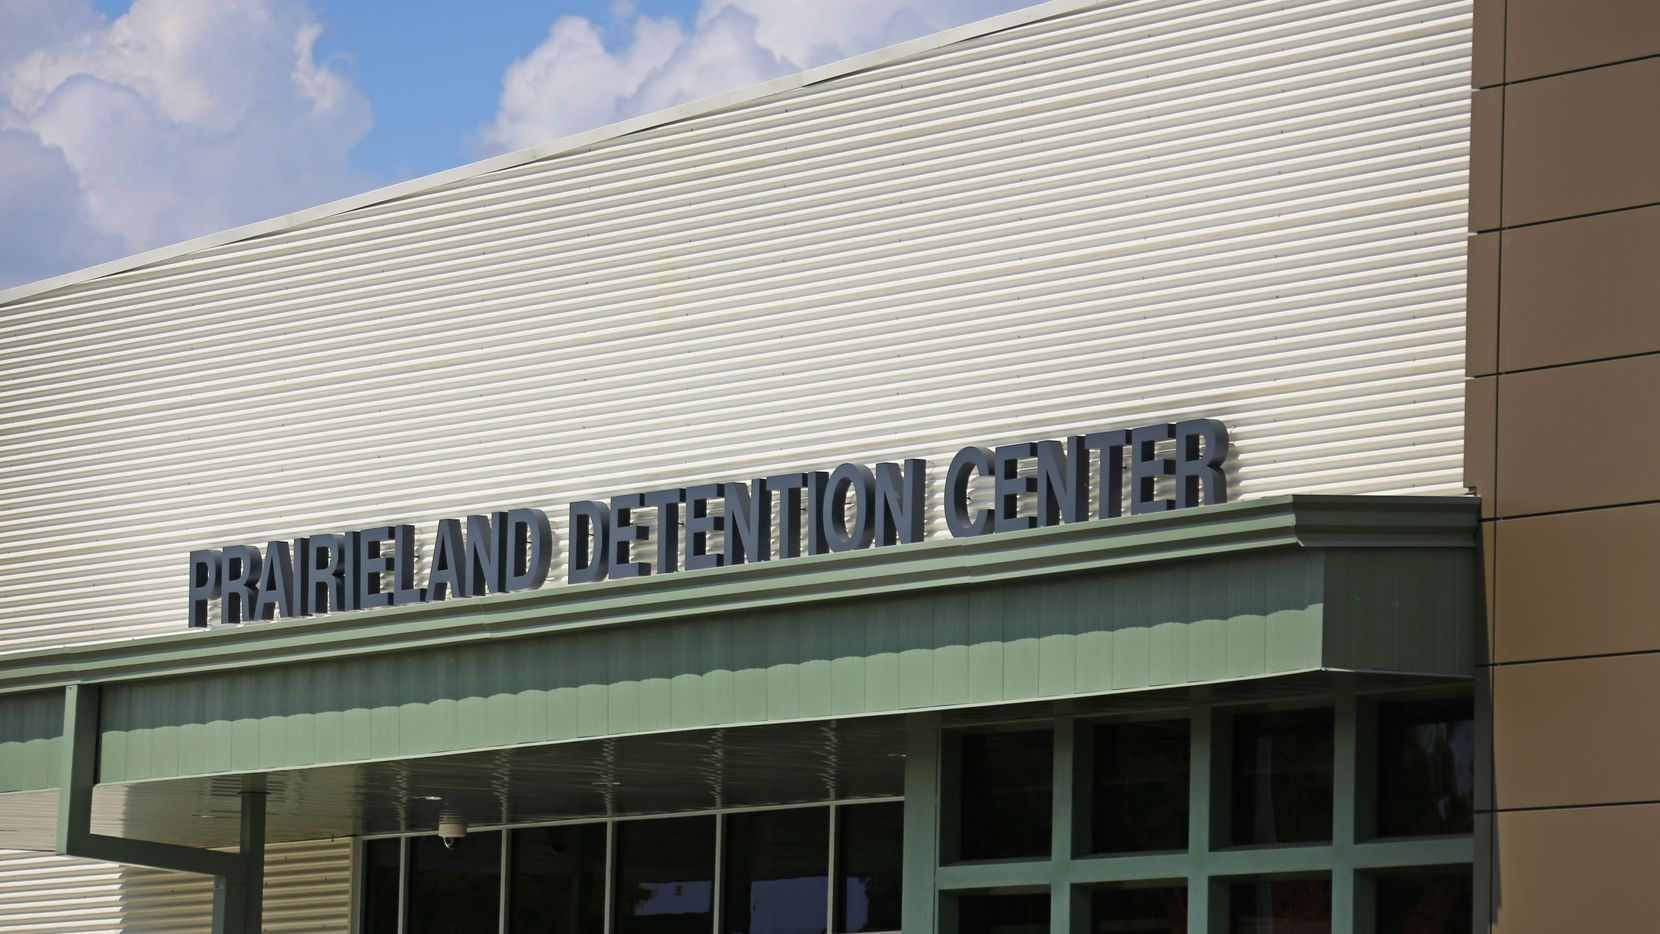 The Prairieland Detention Center in Alvarado is photographed on Sept. 15, 2016, a few months before it officially opened.